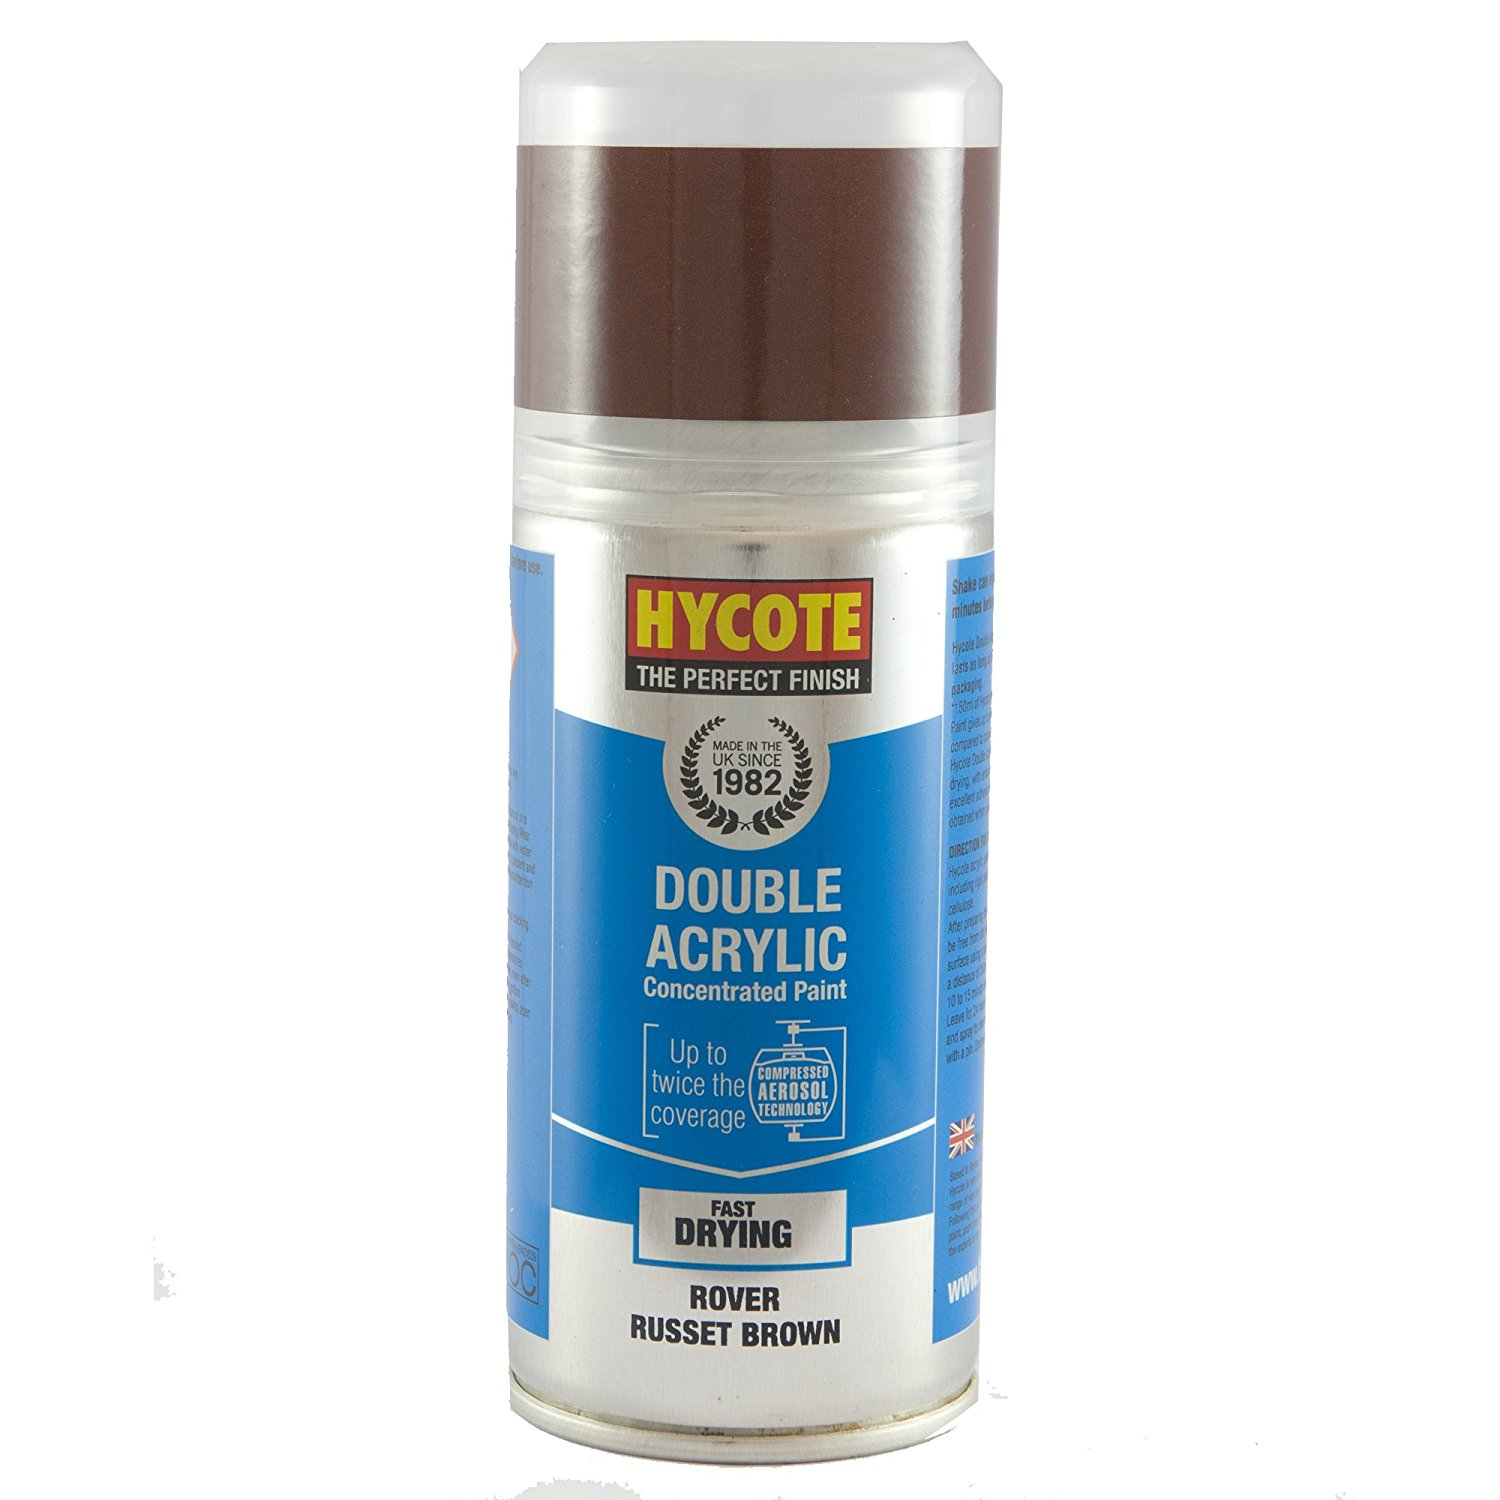 Hycote Rover Russet Brown Double Acrylic Spray Paint 150Ml Xdrv106-0